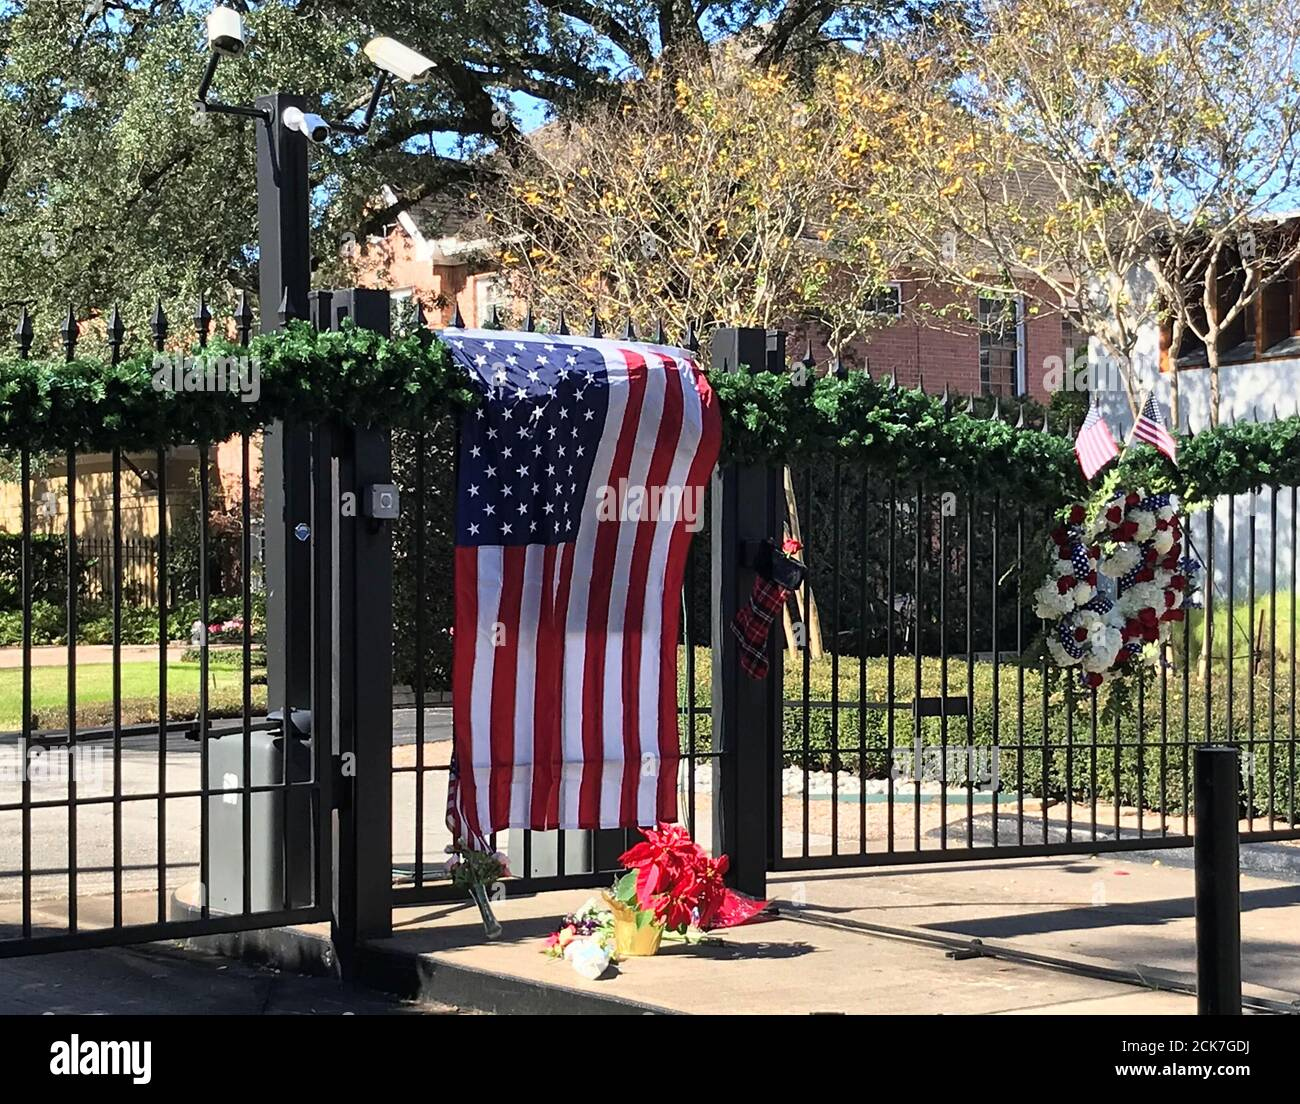 A flag is draped over the gate to the neighborhood of the home of former President George H.W. Bush, a day after he passed away in Houston, Texas, U.S. December 1, 2018.  REUTERS/Gary McWilliams Stock Photo